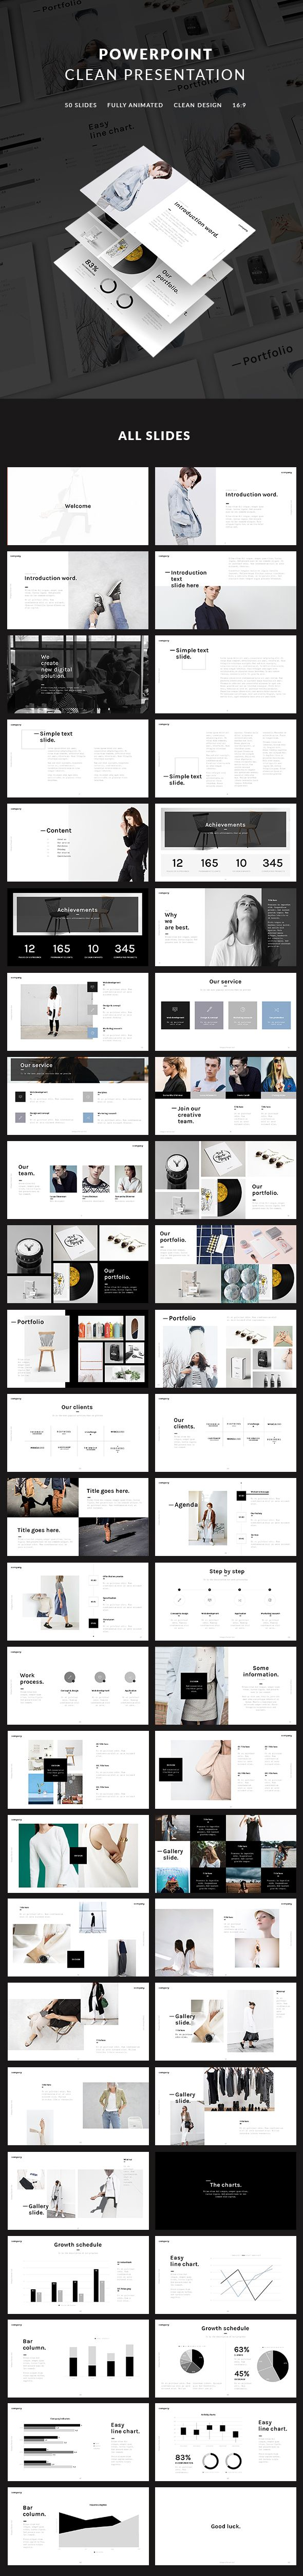 Clean Presentation (PowerPoint Templates)                                                                                                                                                                                 Mehr